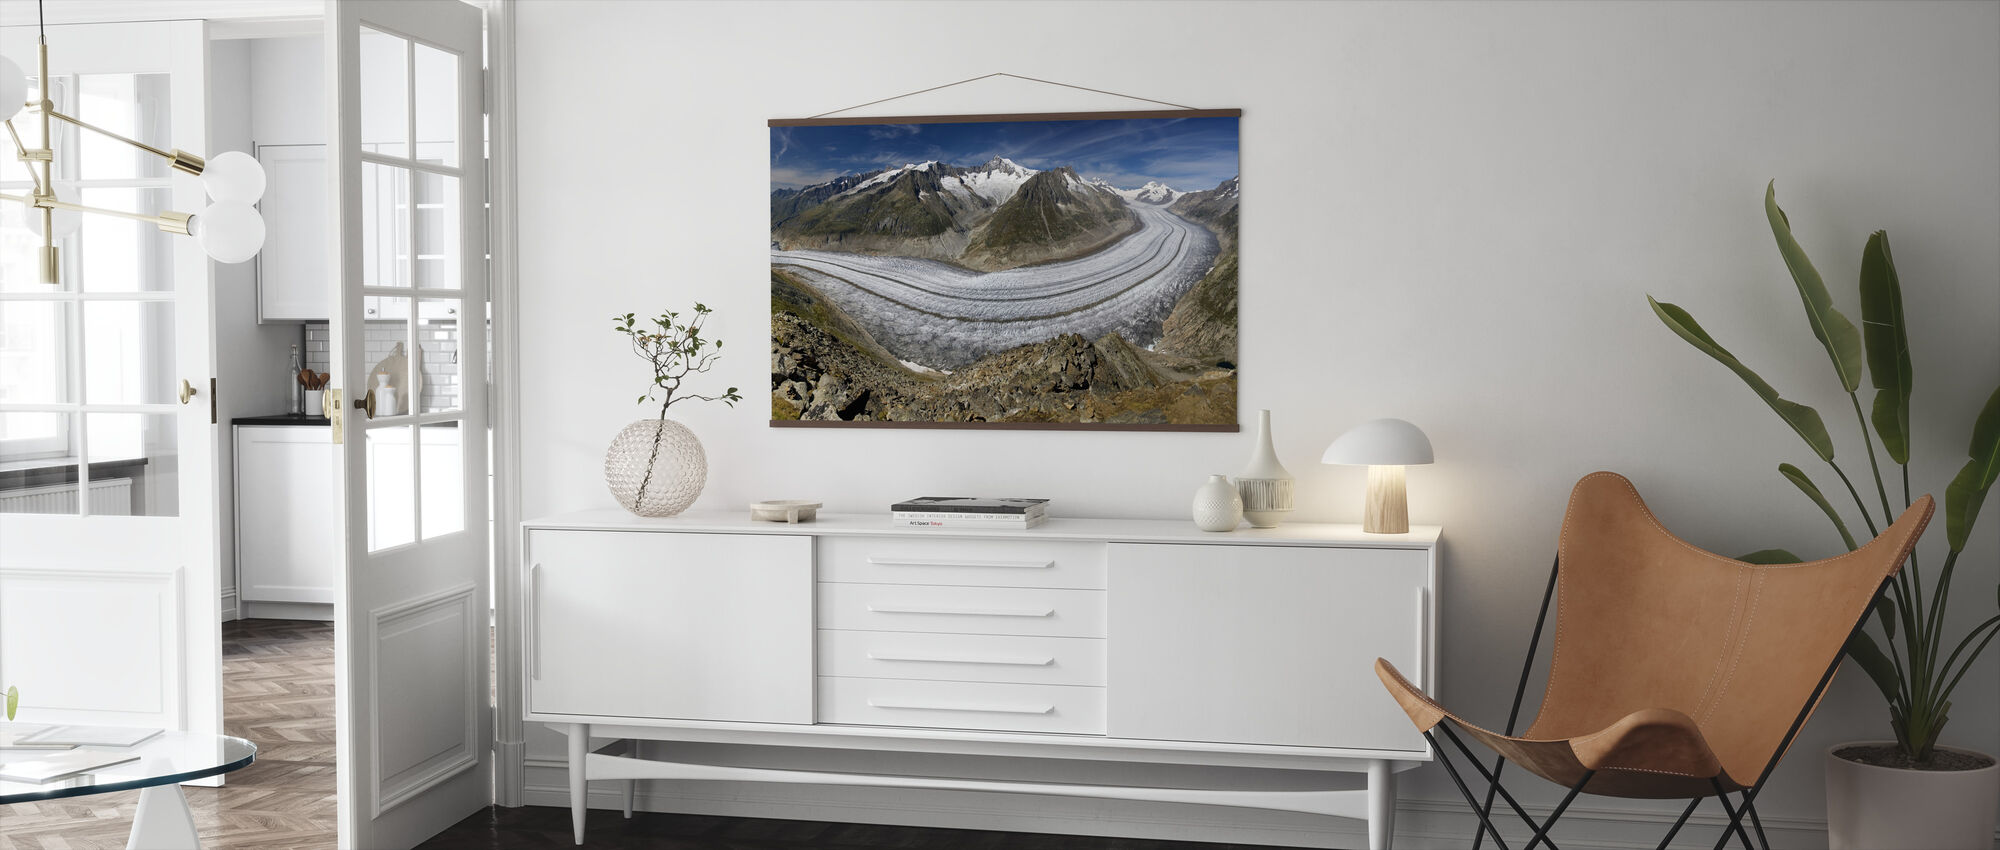 Glacier - Poster - Living Room